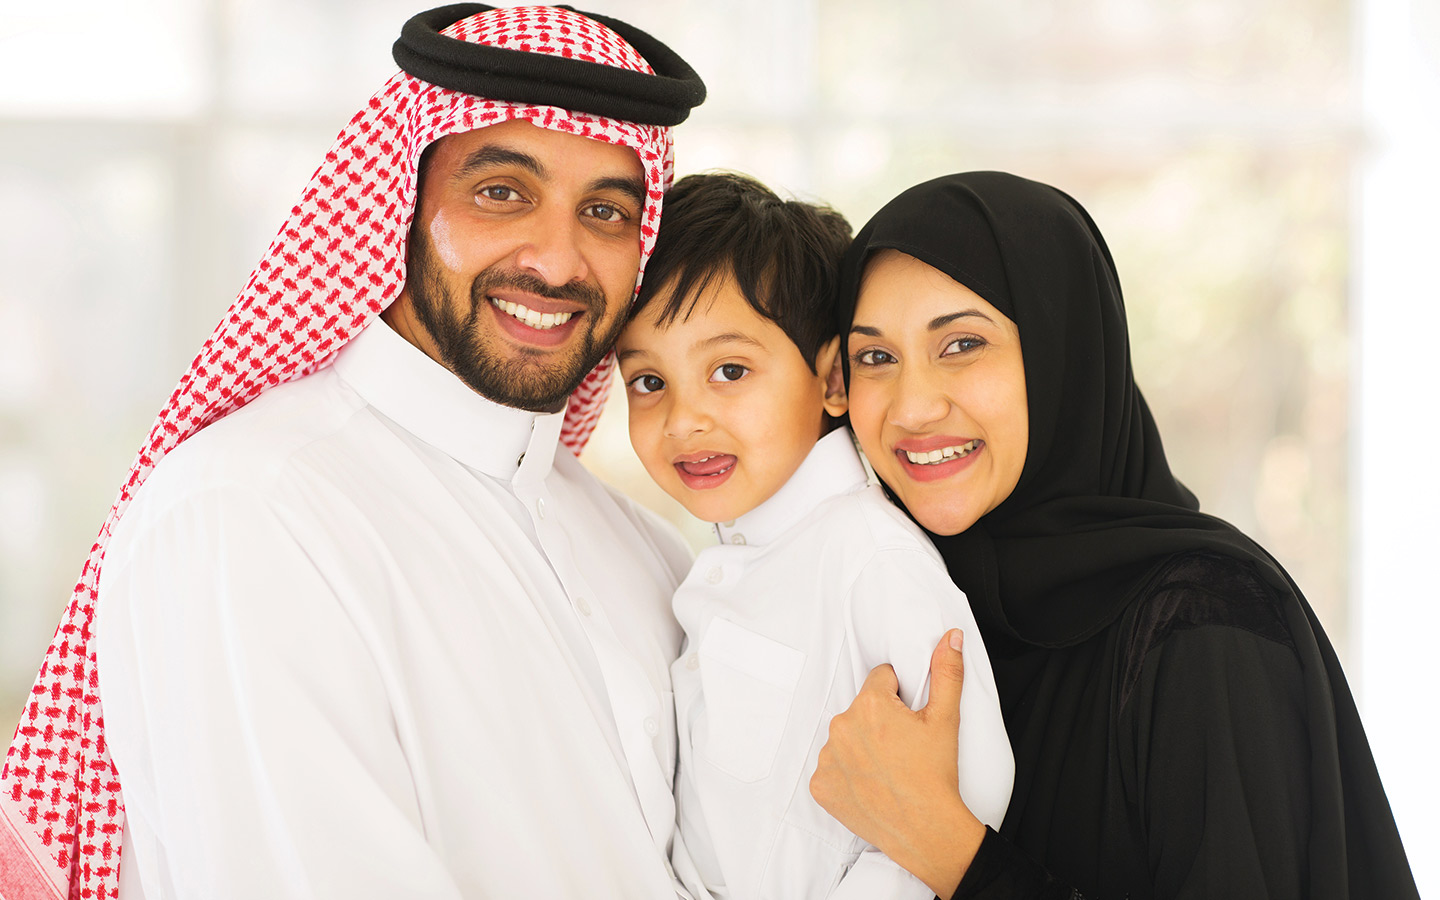 Arab family smiling and happy